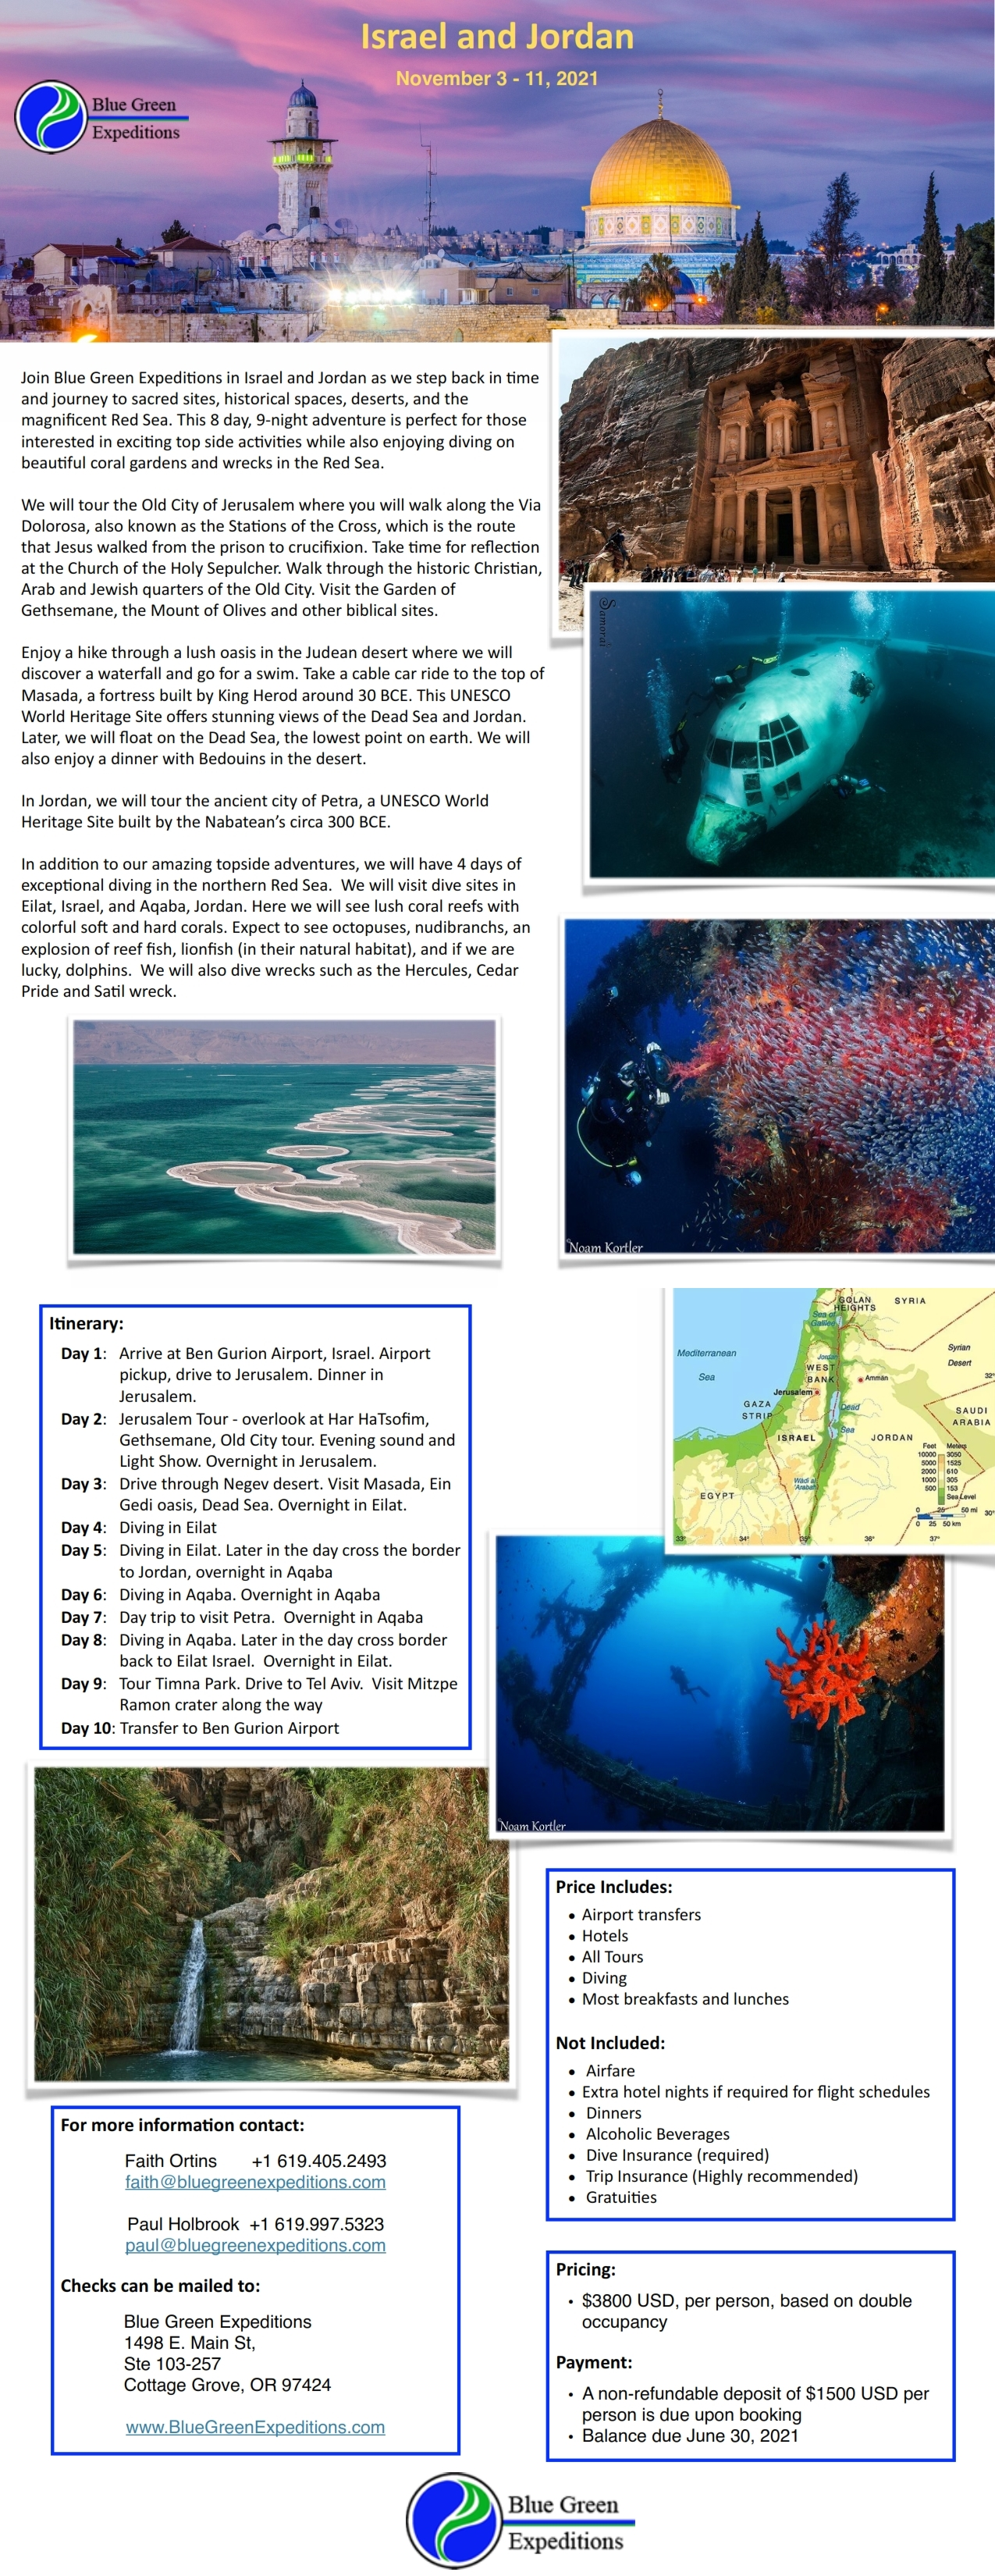 Israel and Jordan expedition, November 3 - 11, 2021, trip itinerary and pricing. Same information is available in the expedition flyer PDF.